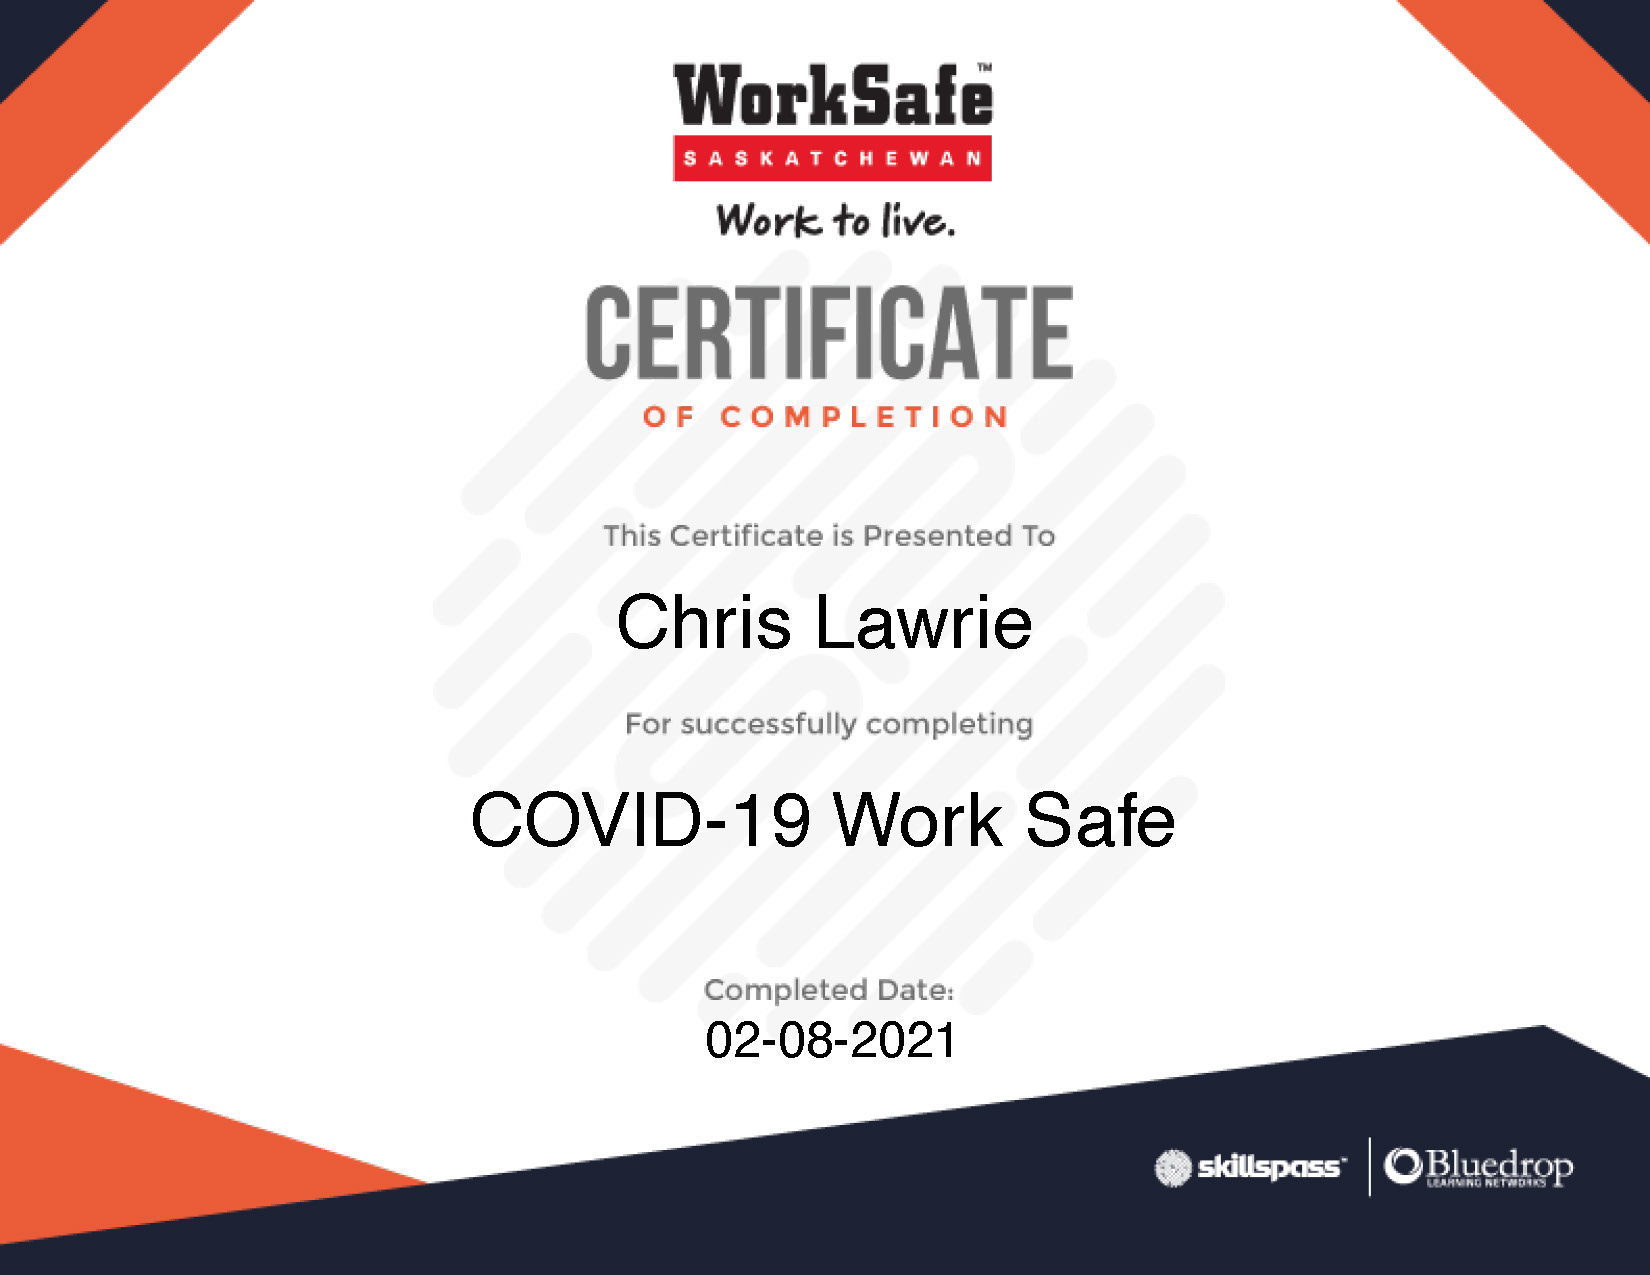 Work Safe Certificate of Completion